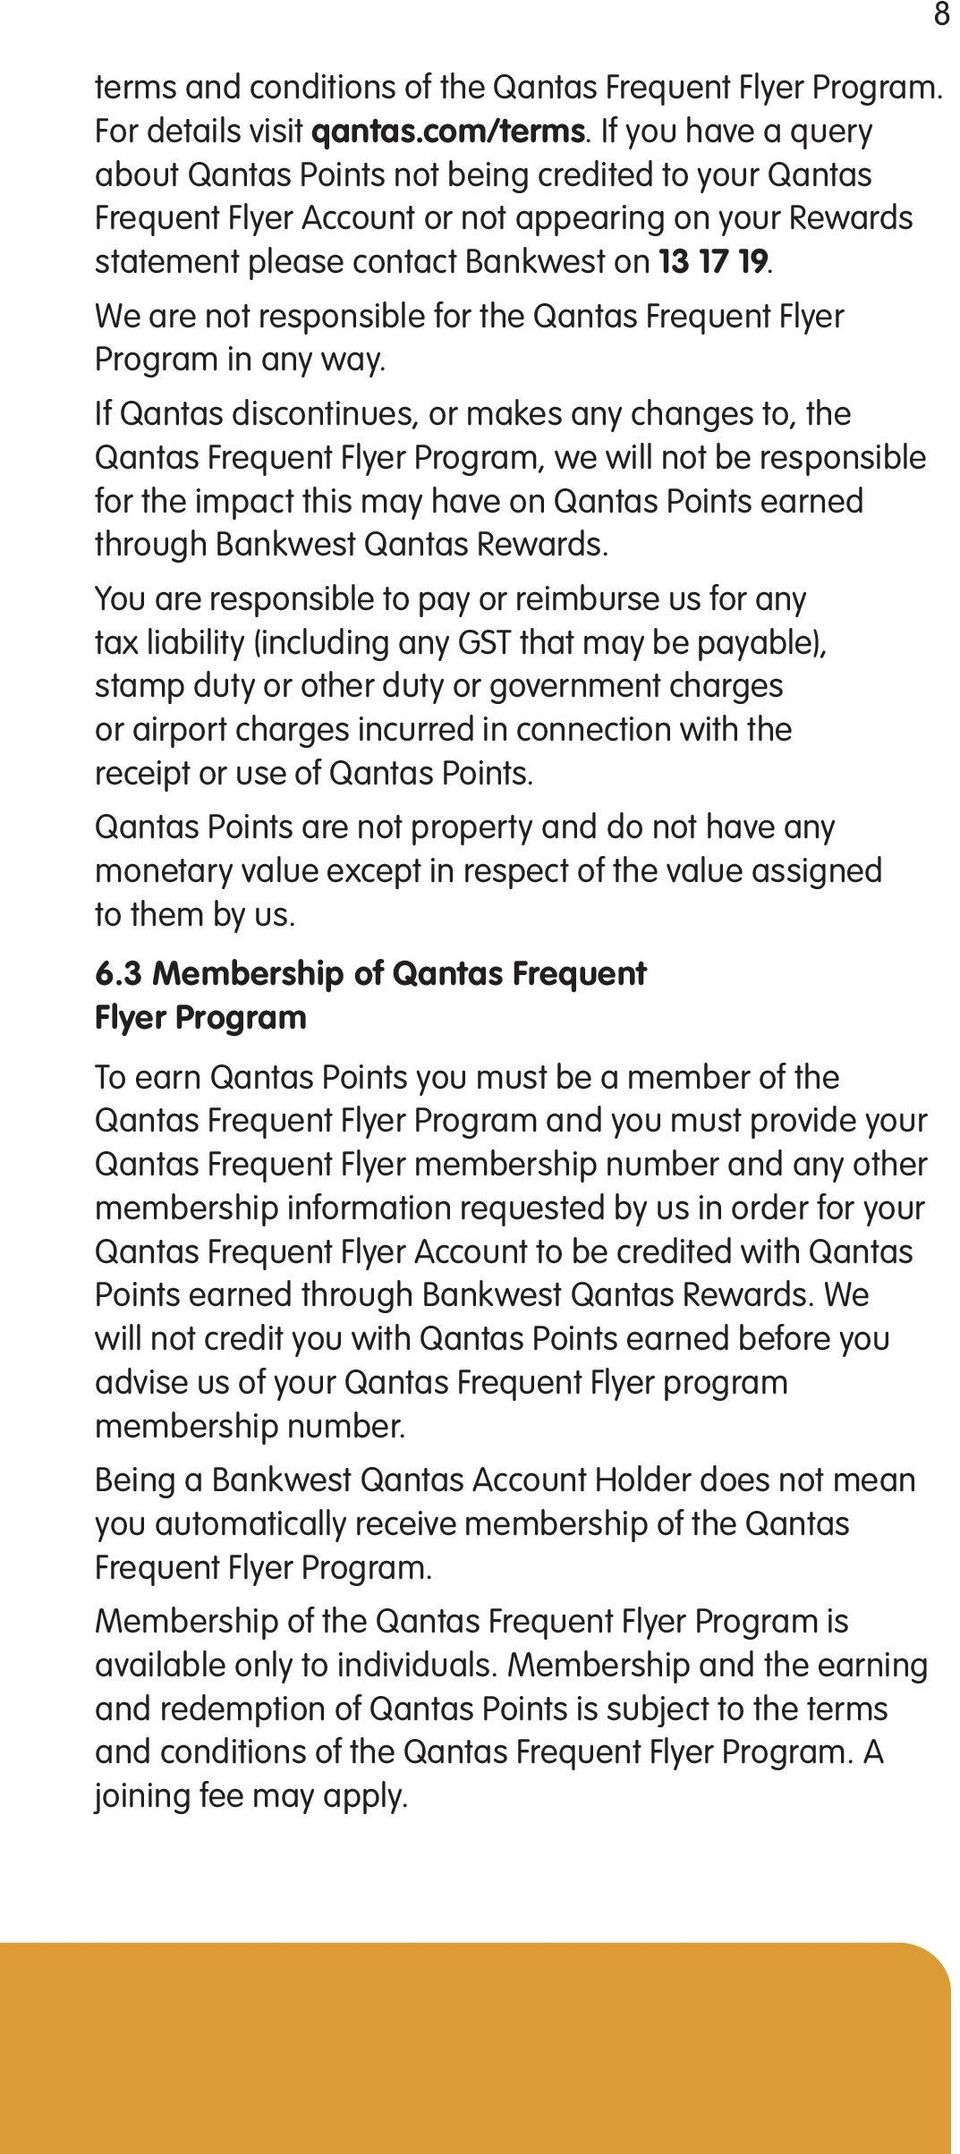 We are not responsible for the Qantas Frequent Flyer Program in any way.